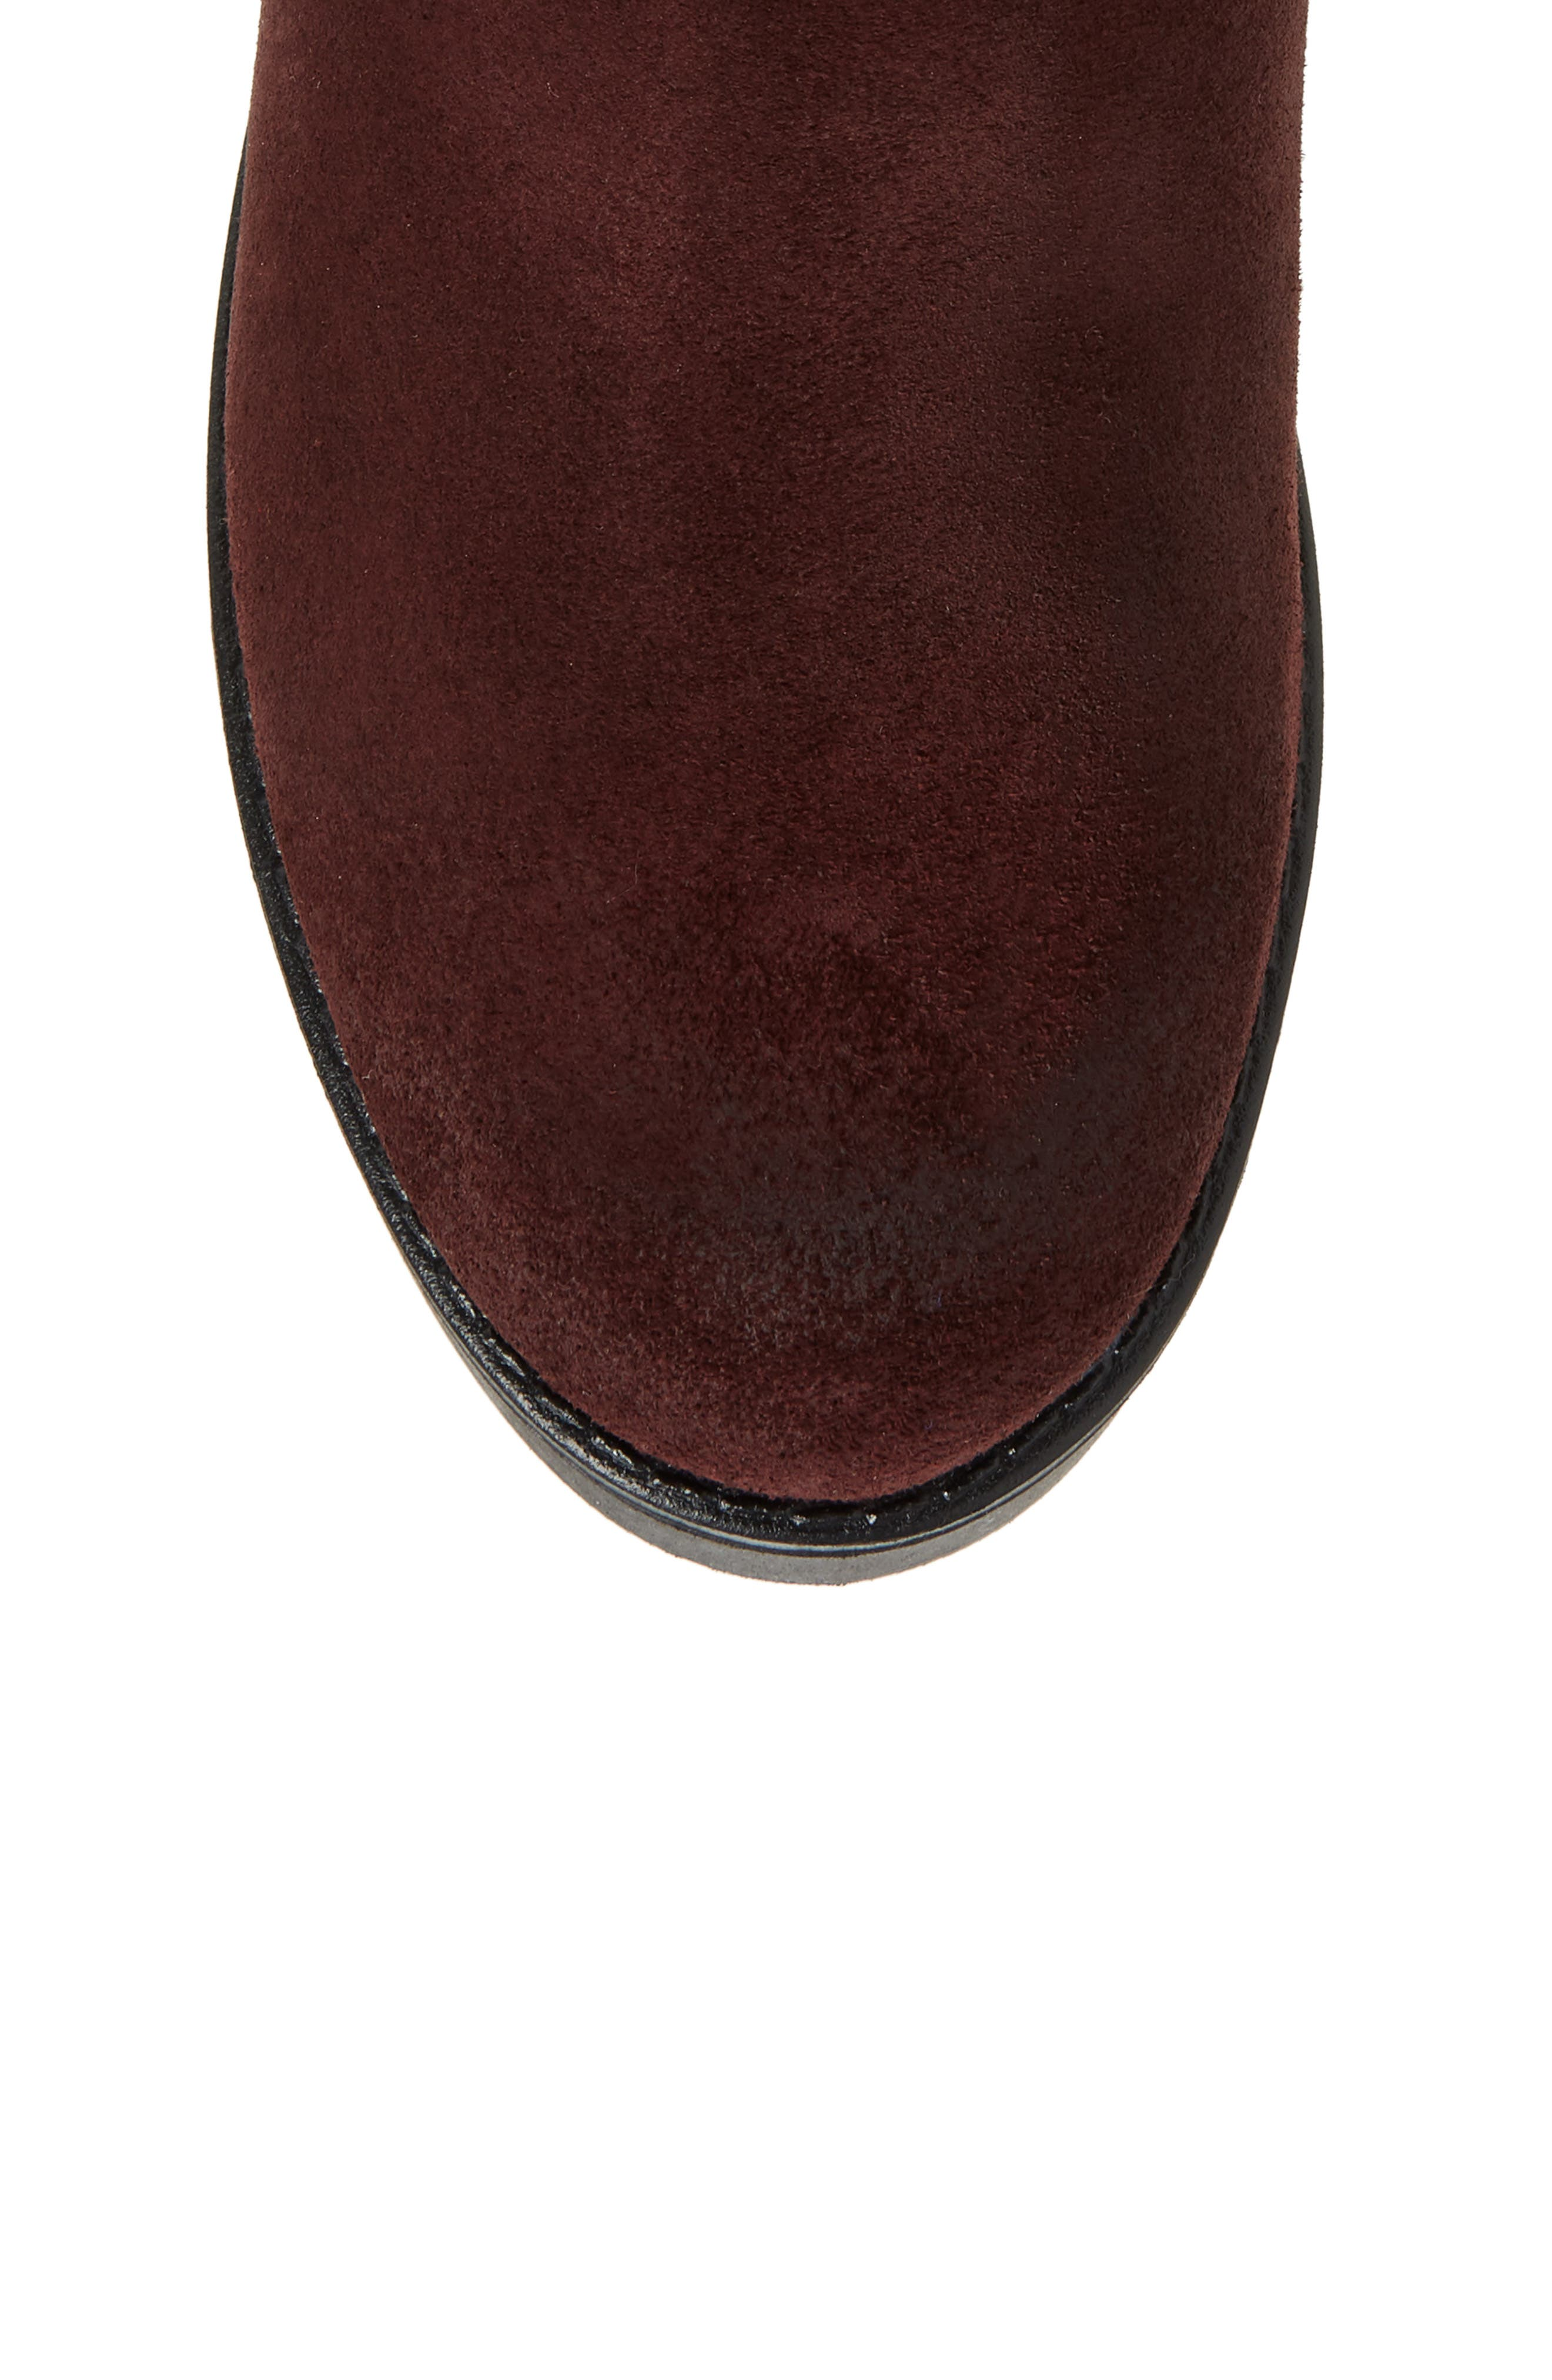 Graham Waterproof Winter Boot with Faux Fur Cuff,                             Alternate thumbnail 5, color,                             Wine Suede